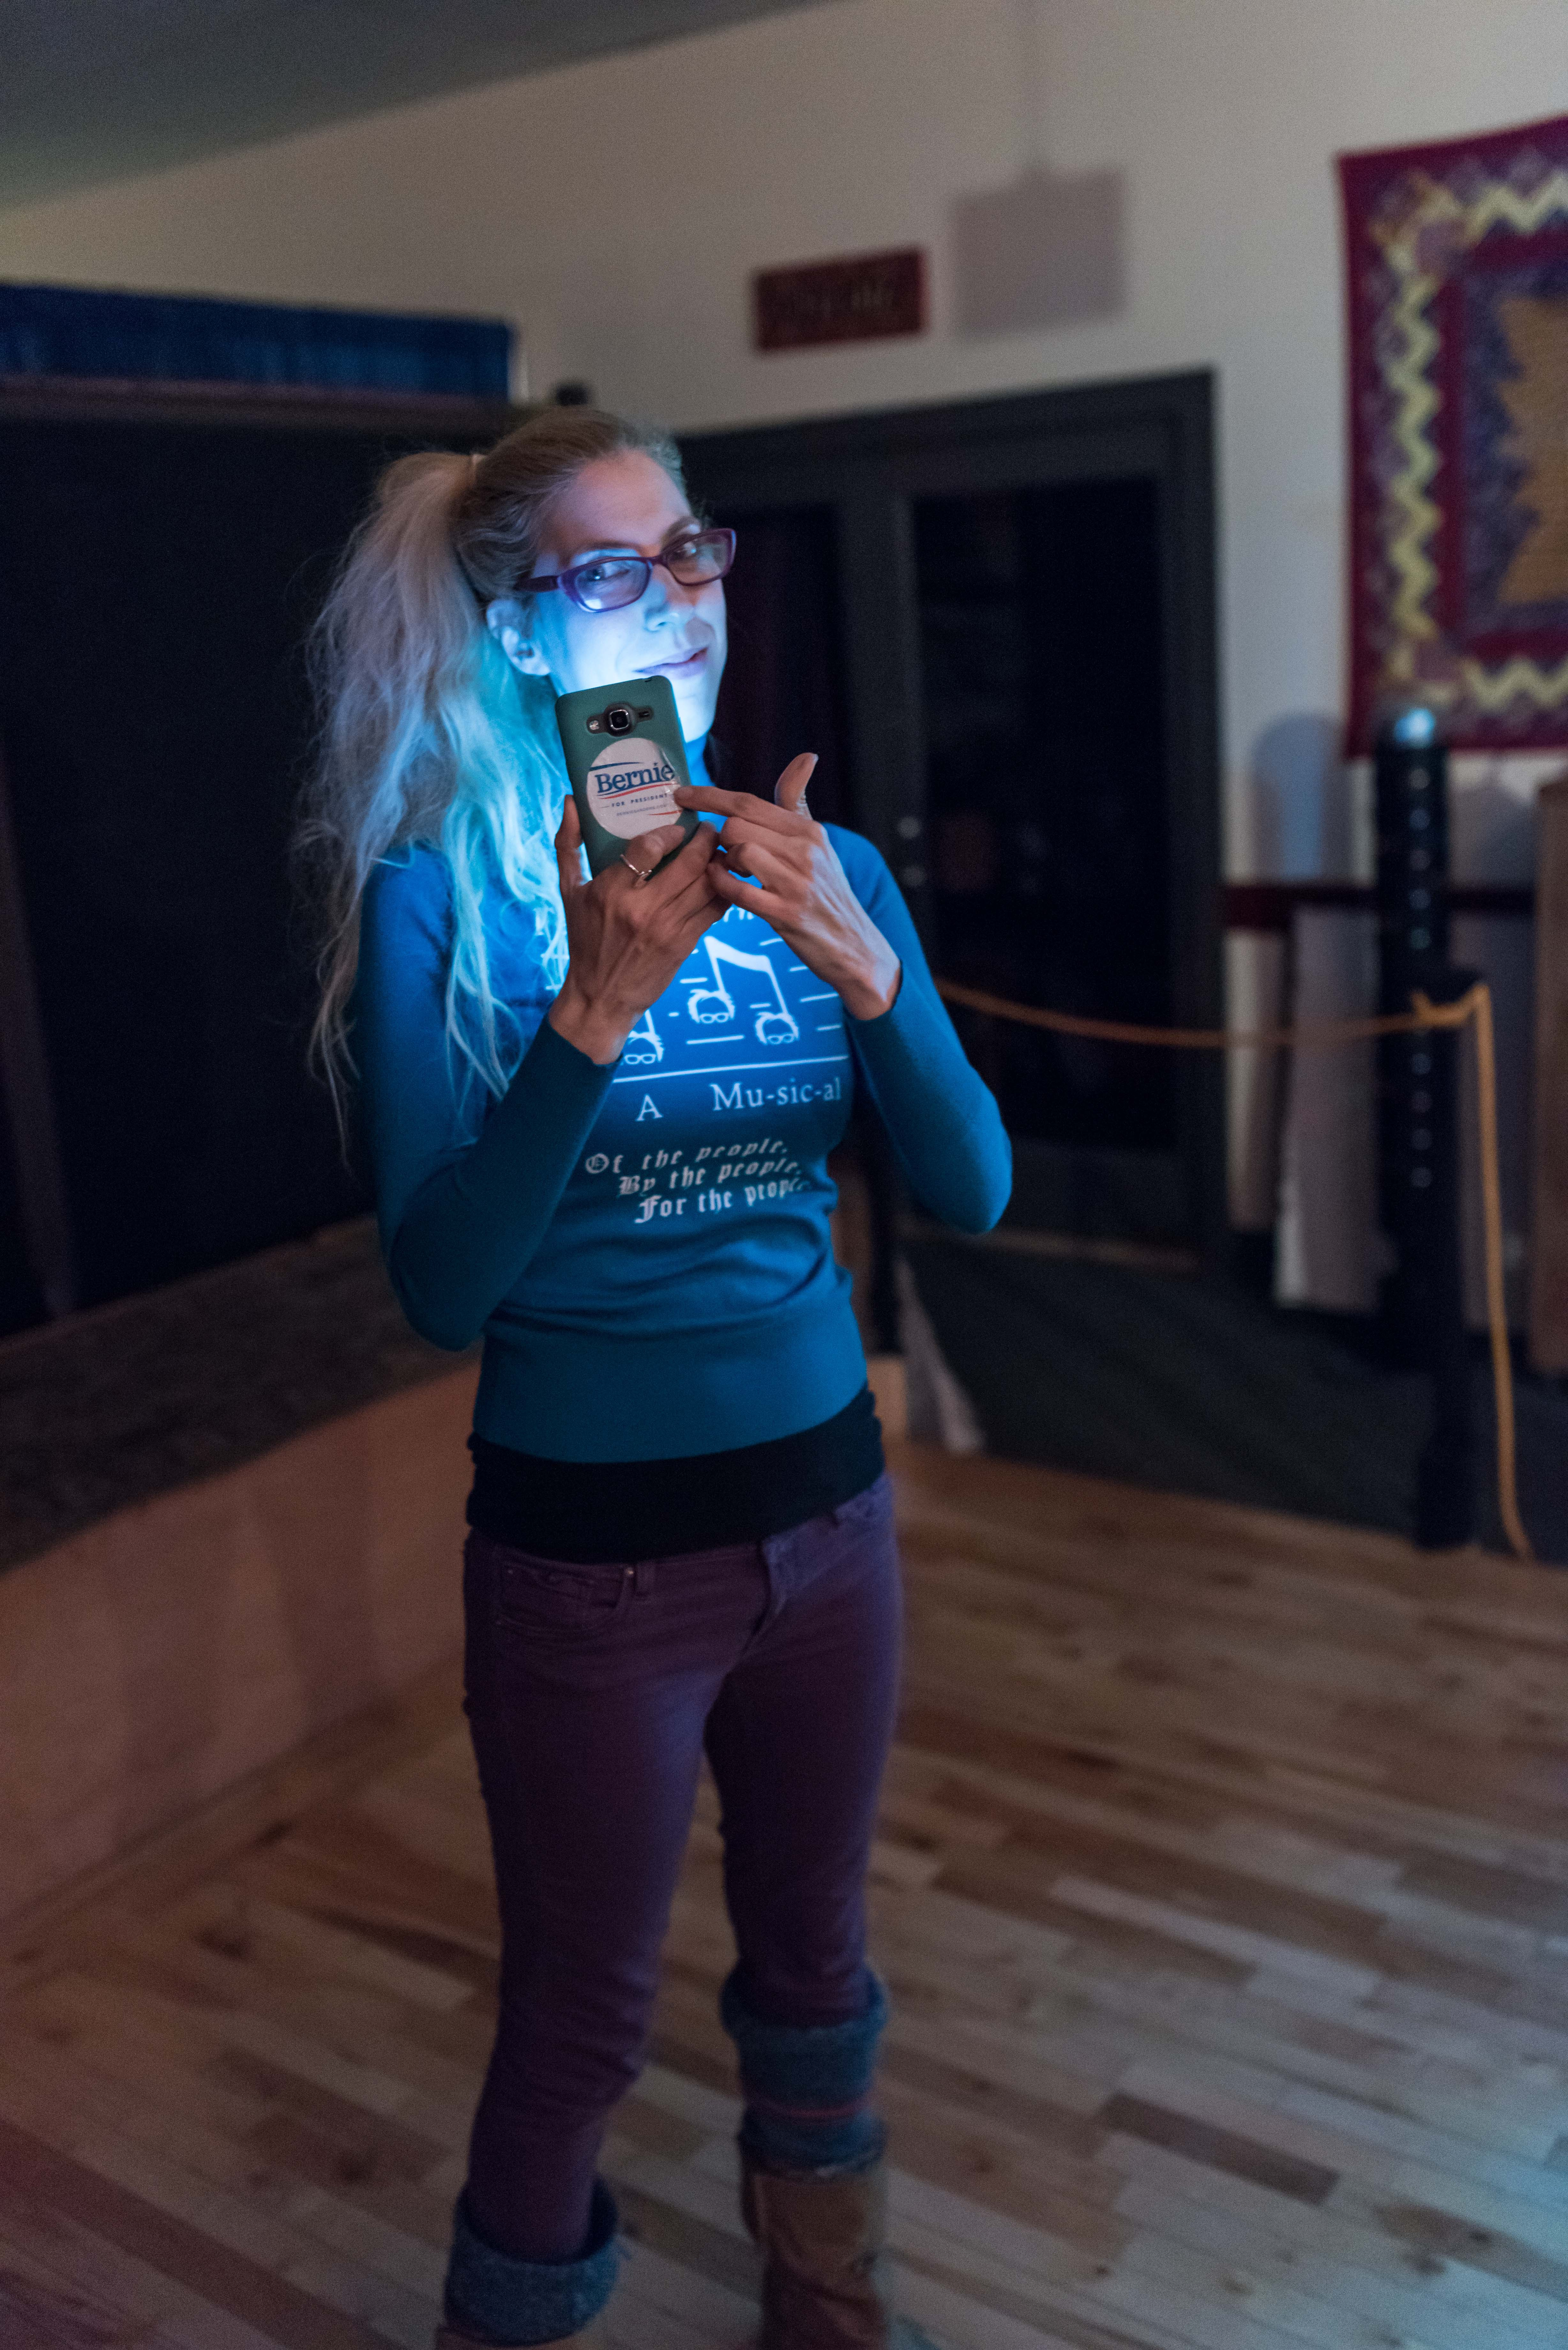 Meira Marom, before the start of the play, showing off the Bernie bumper sticker on her phone